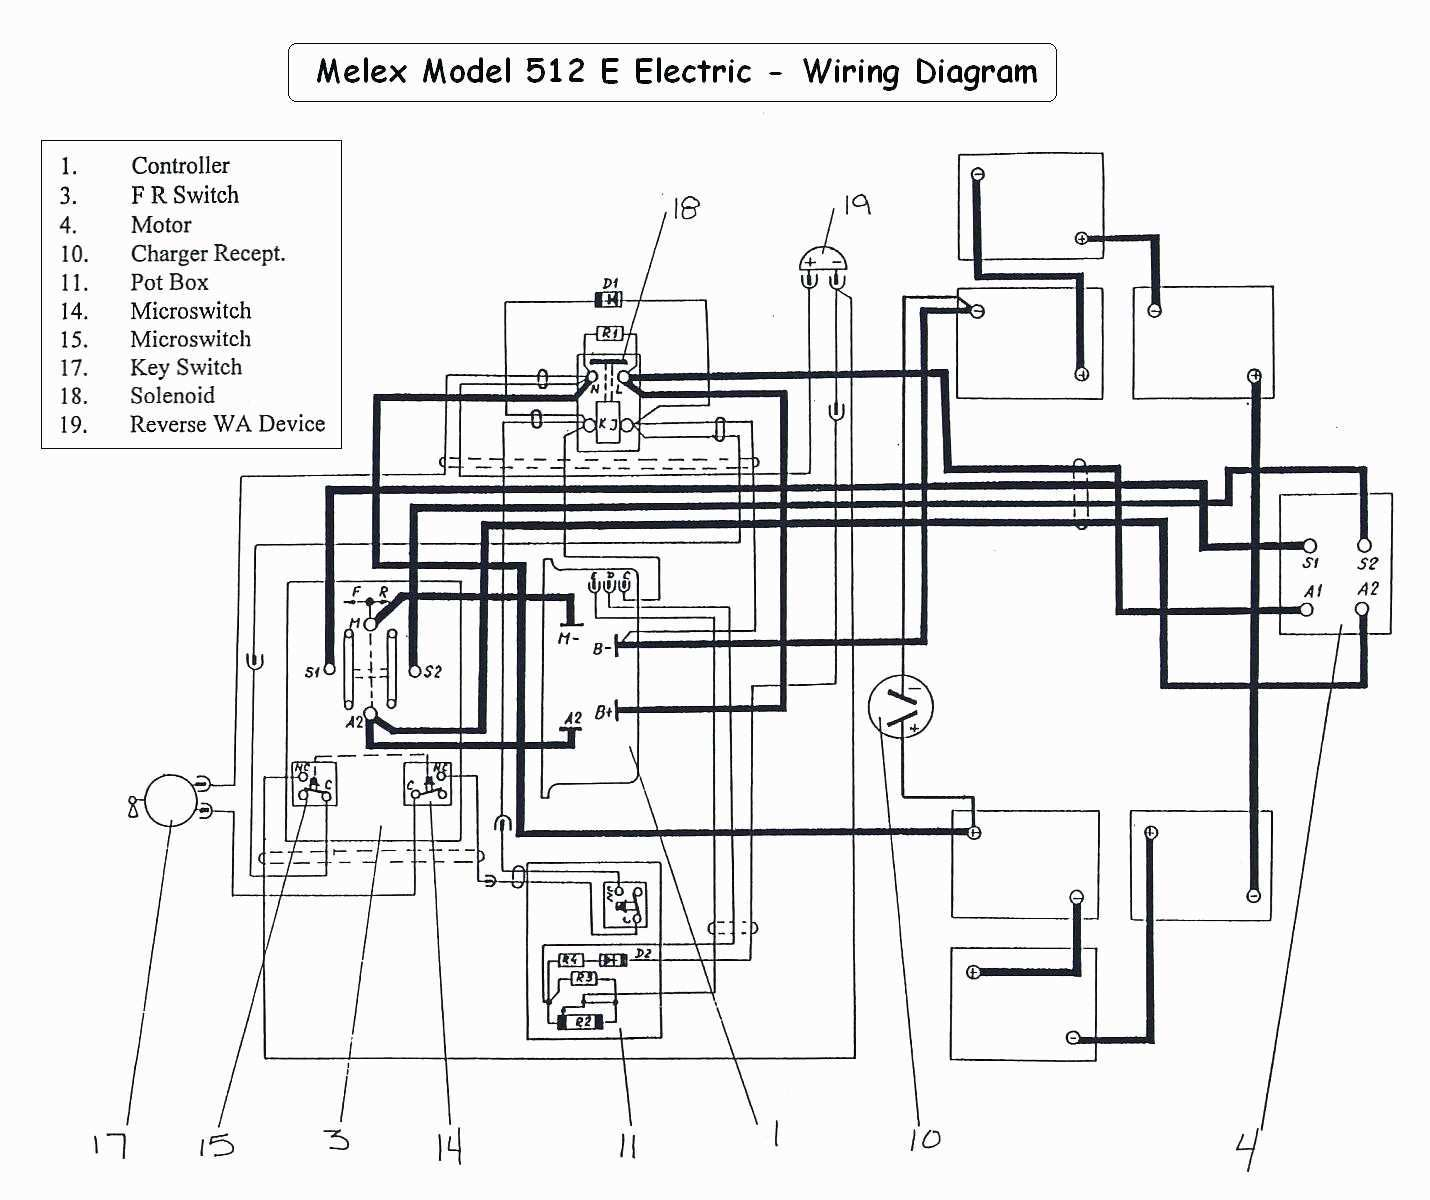 Yamaha G1 Golf Cart 48 Volt Wiring Diagram For Controller Wiring Diagrams Instruction Instruction Mumblestudio It